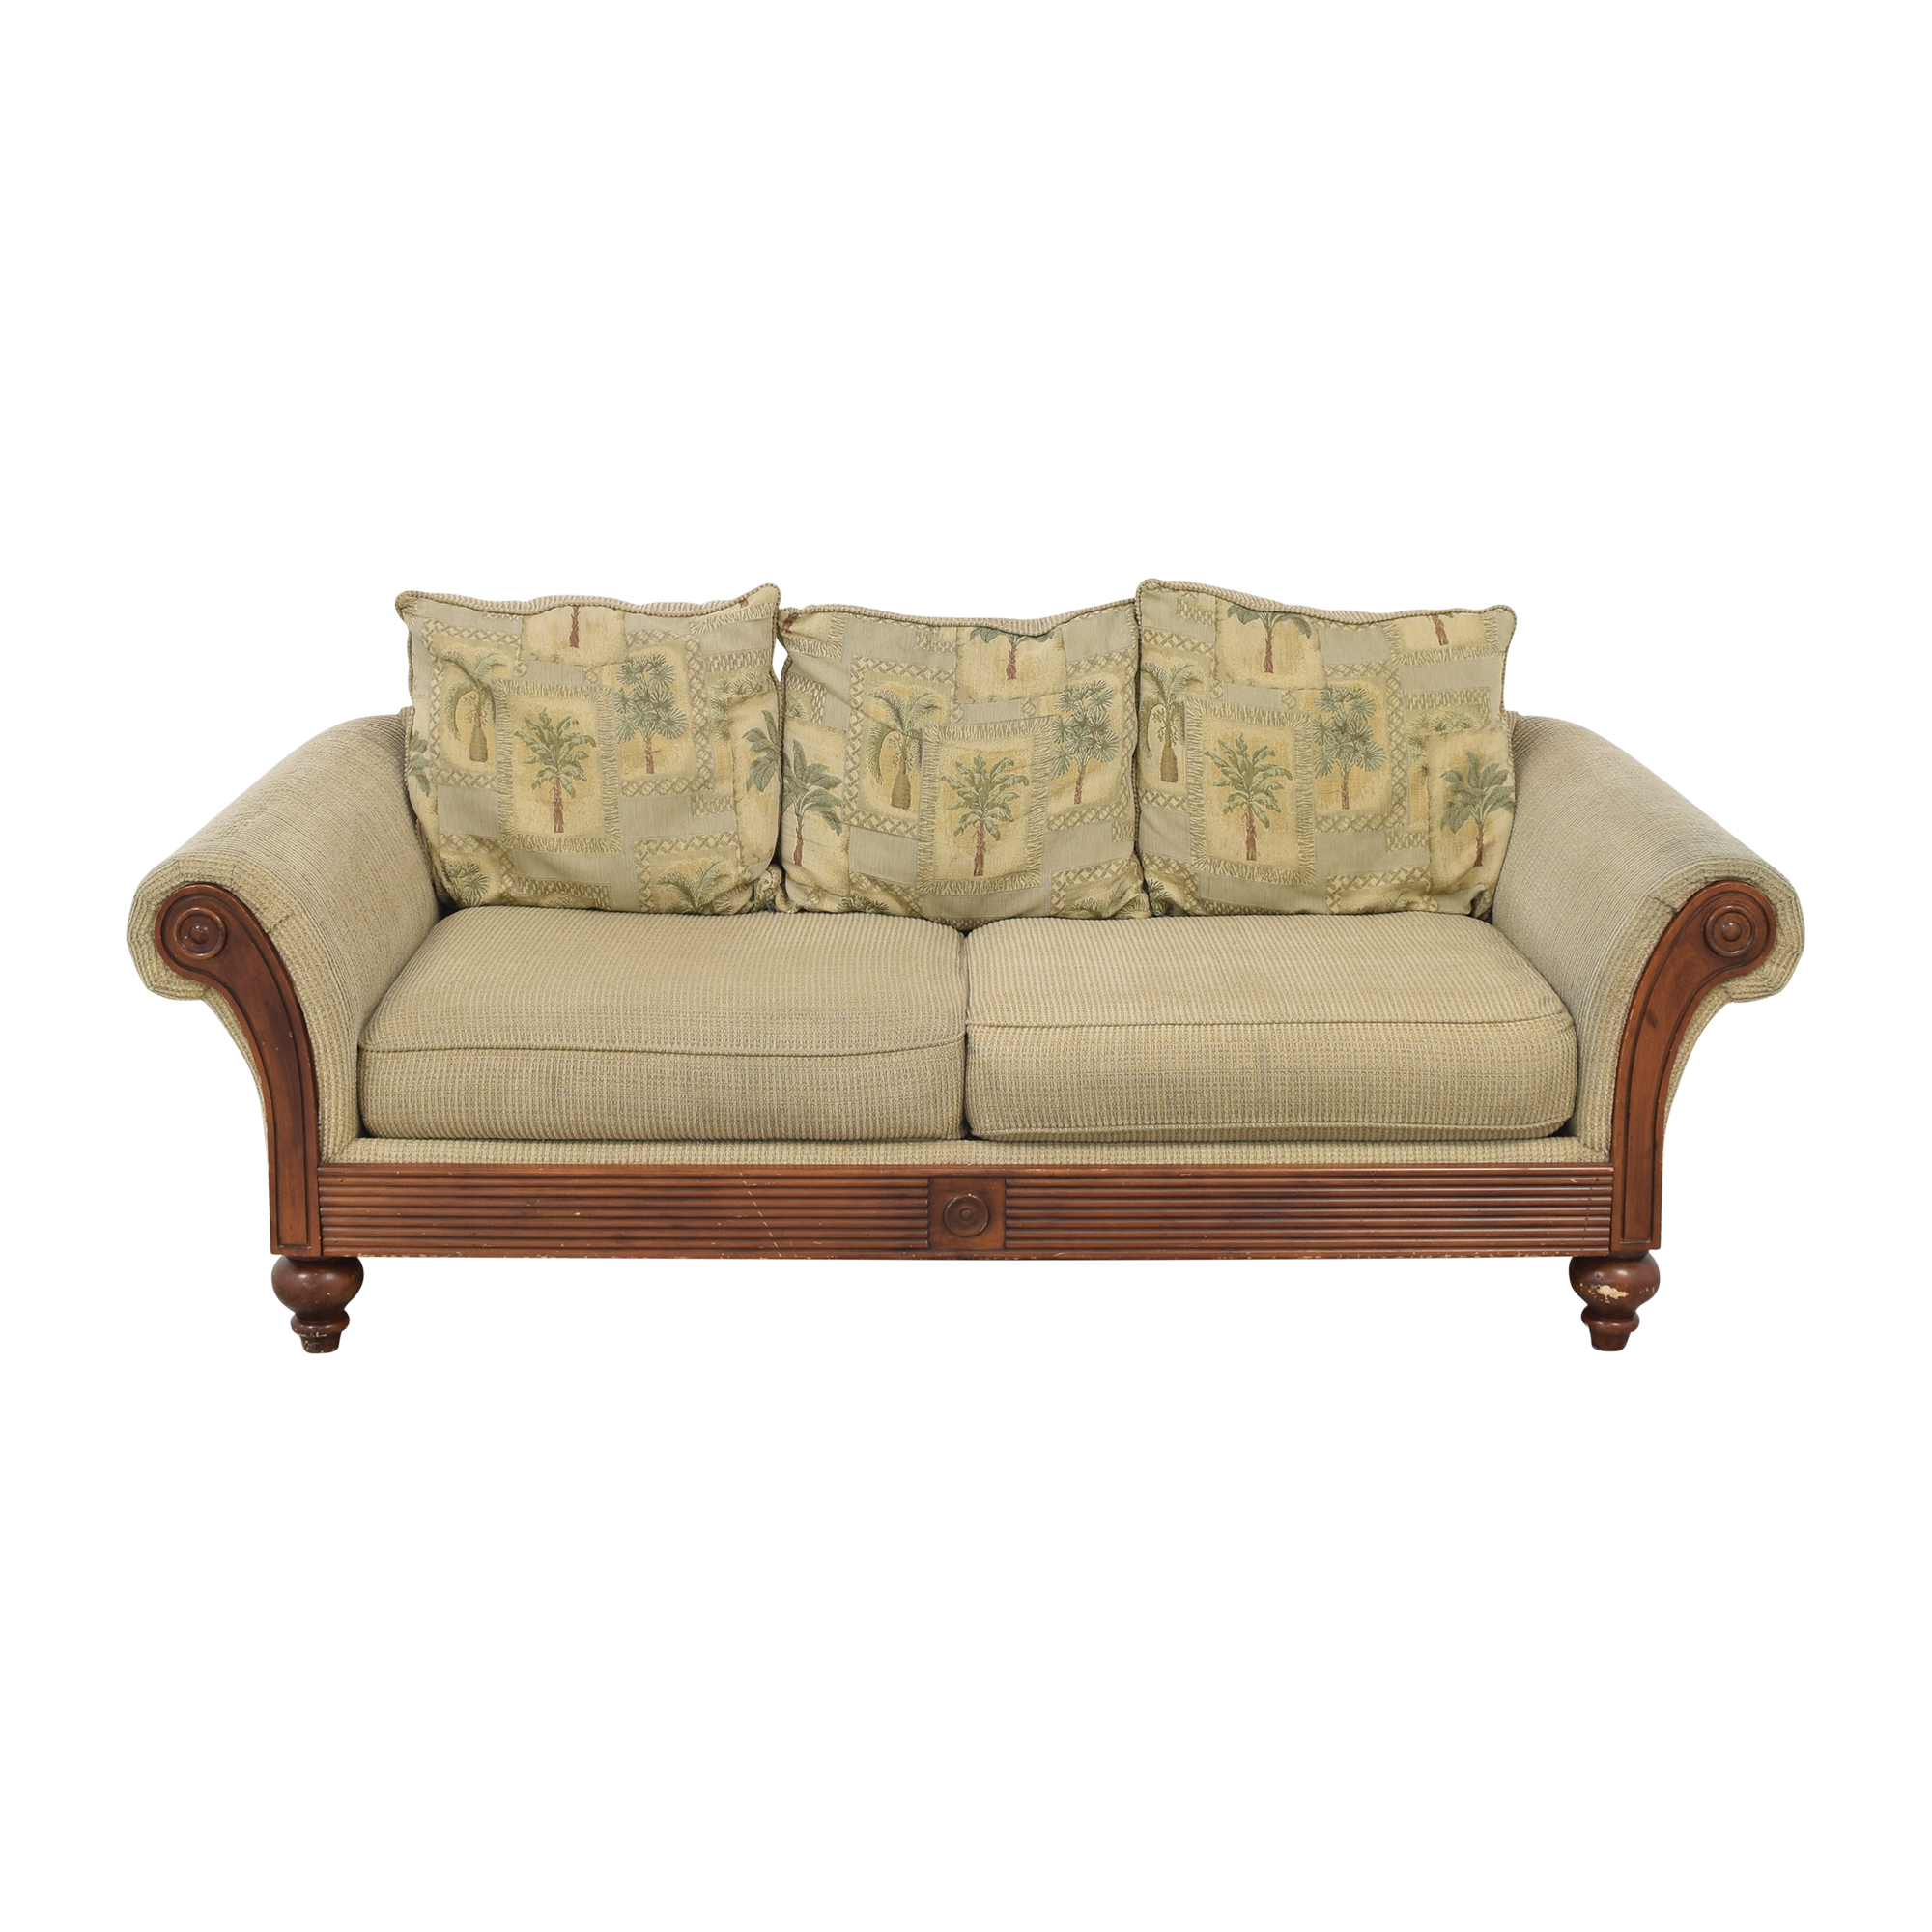 Klaussner Klaussner Chesterfield Style Sofa Sofas